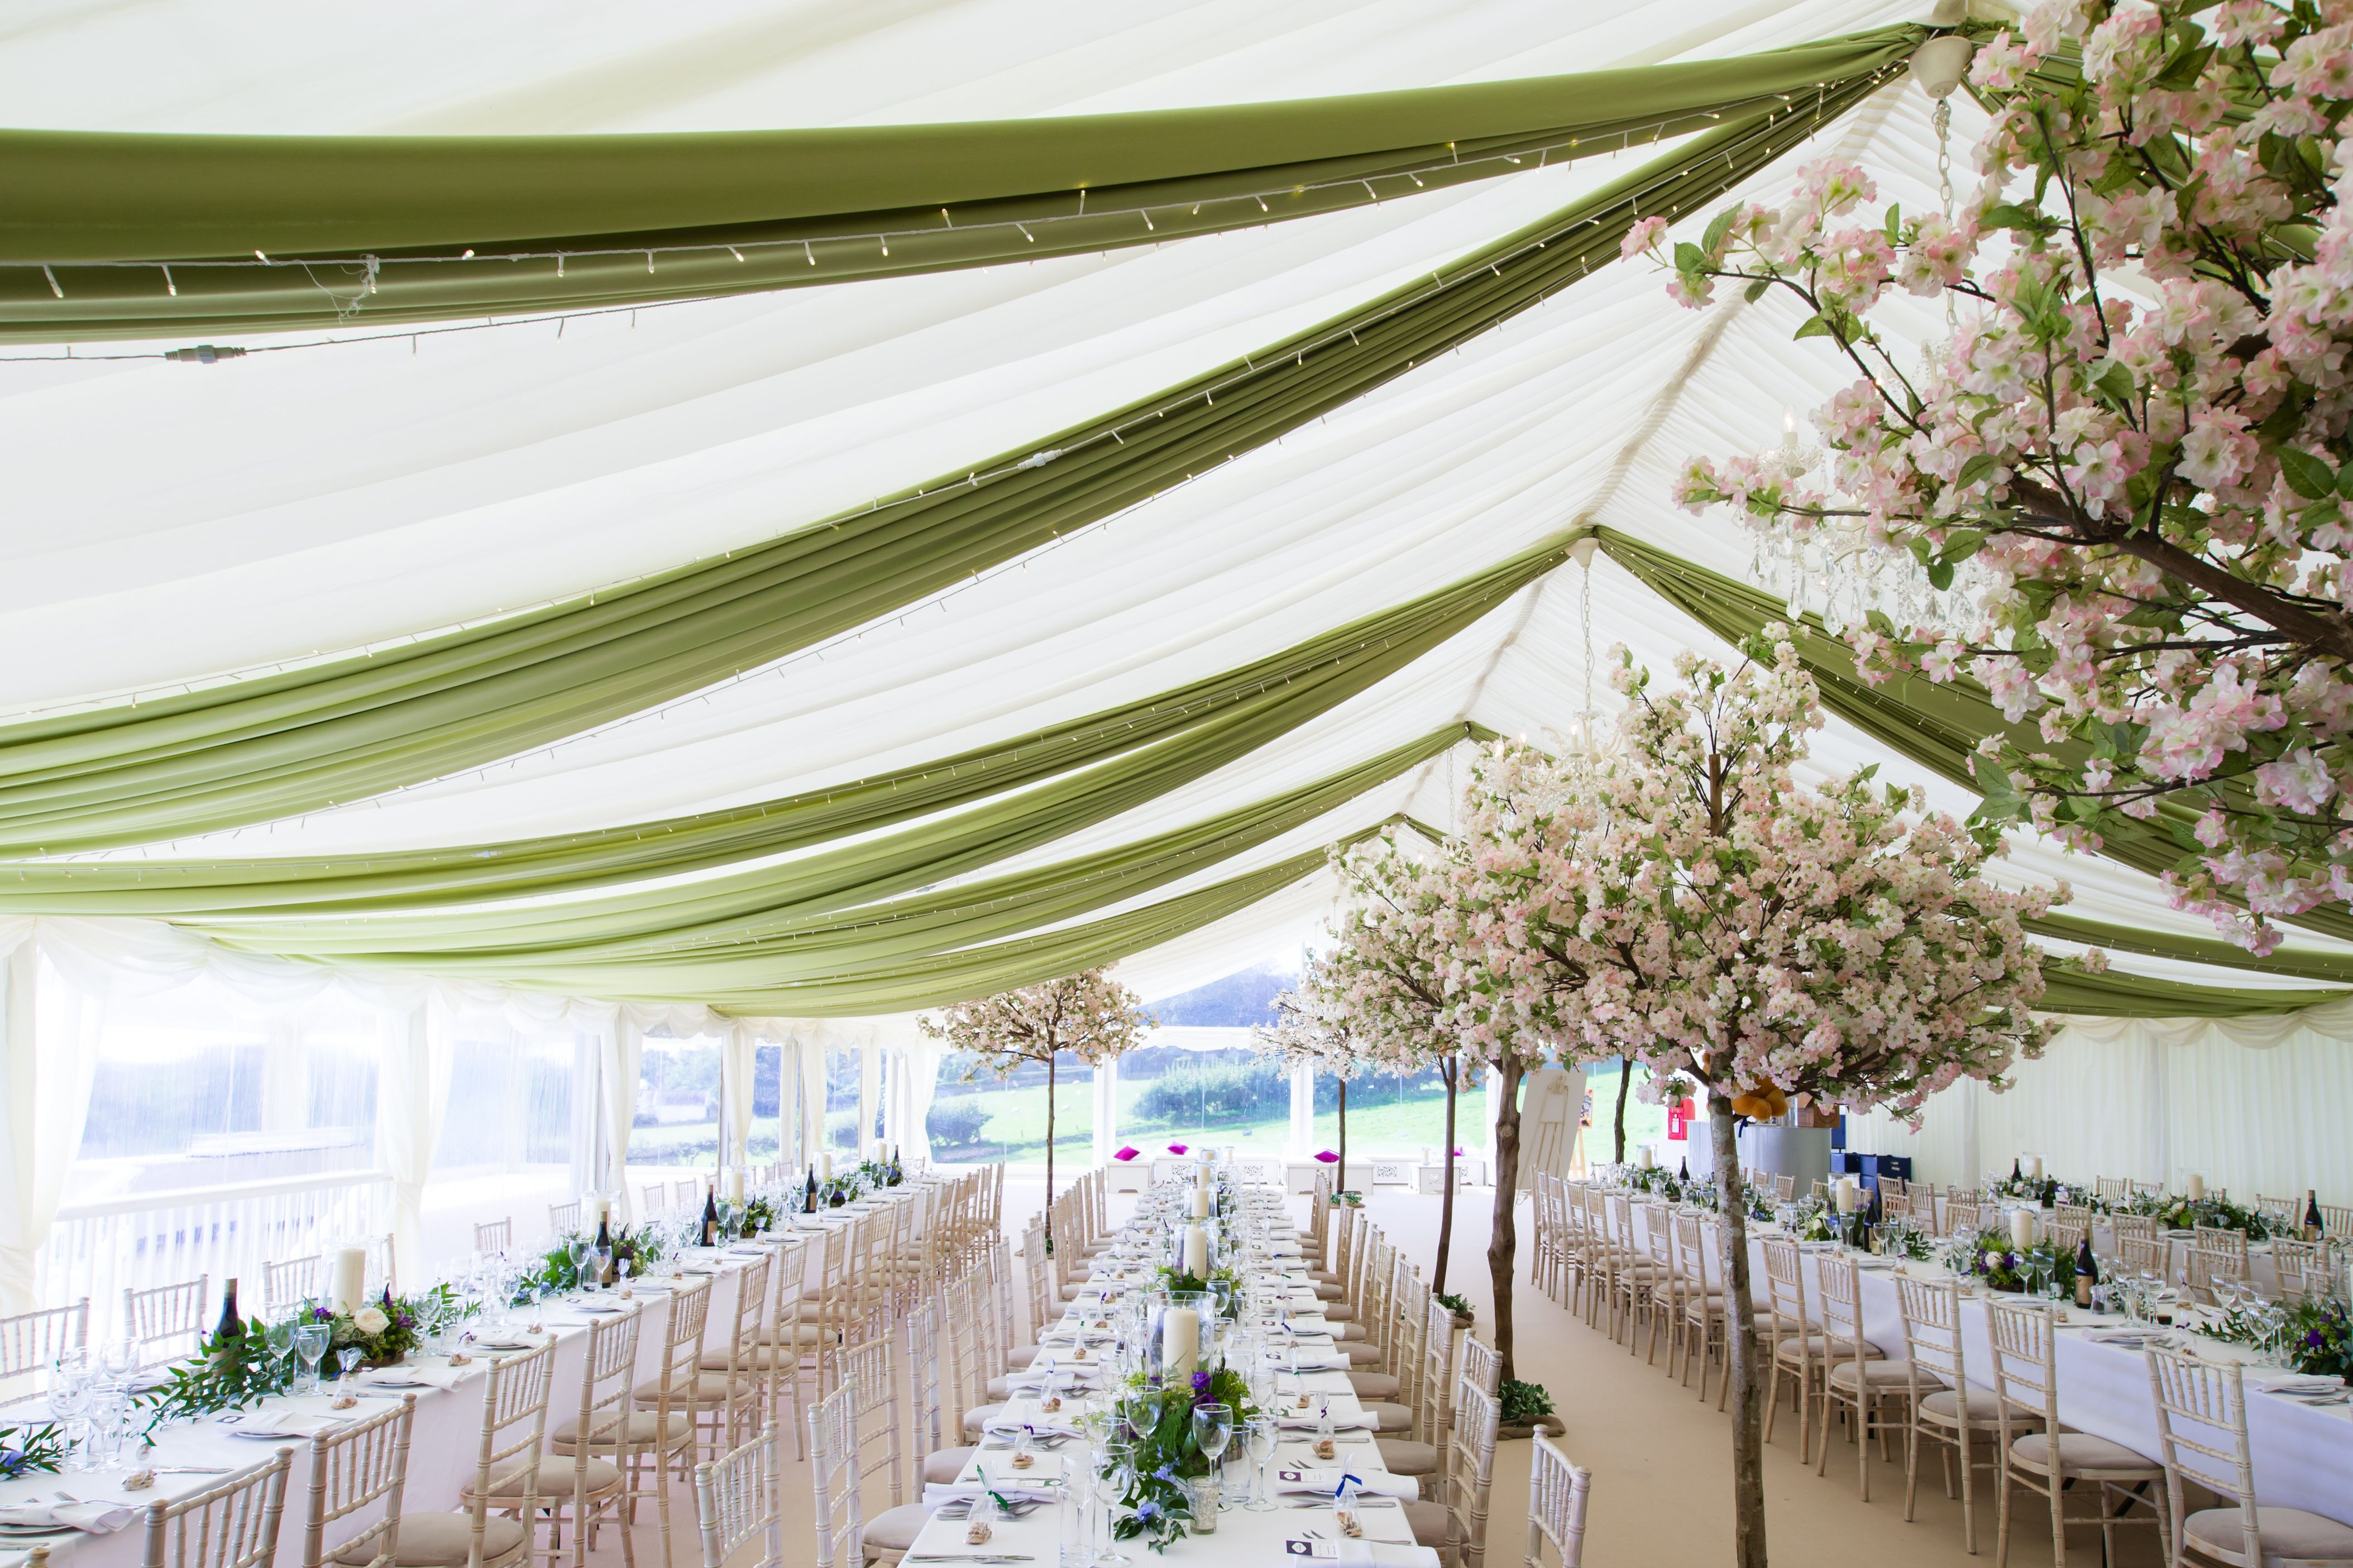 Elegant Drapery And Cherry Blossom Trees A Wonderful Addition For A Summer Marquee Wedding Marquee Wedding Garden Wedding Reception Wedding Draping